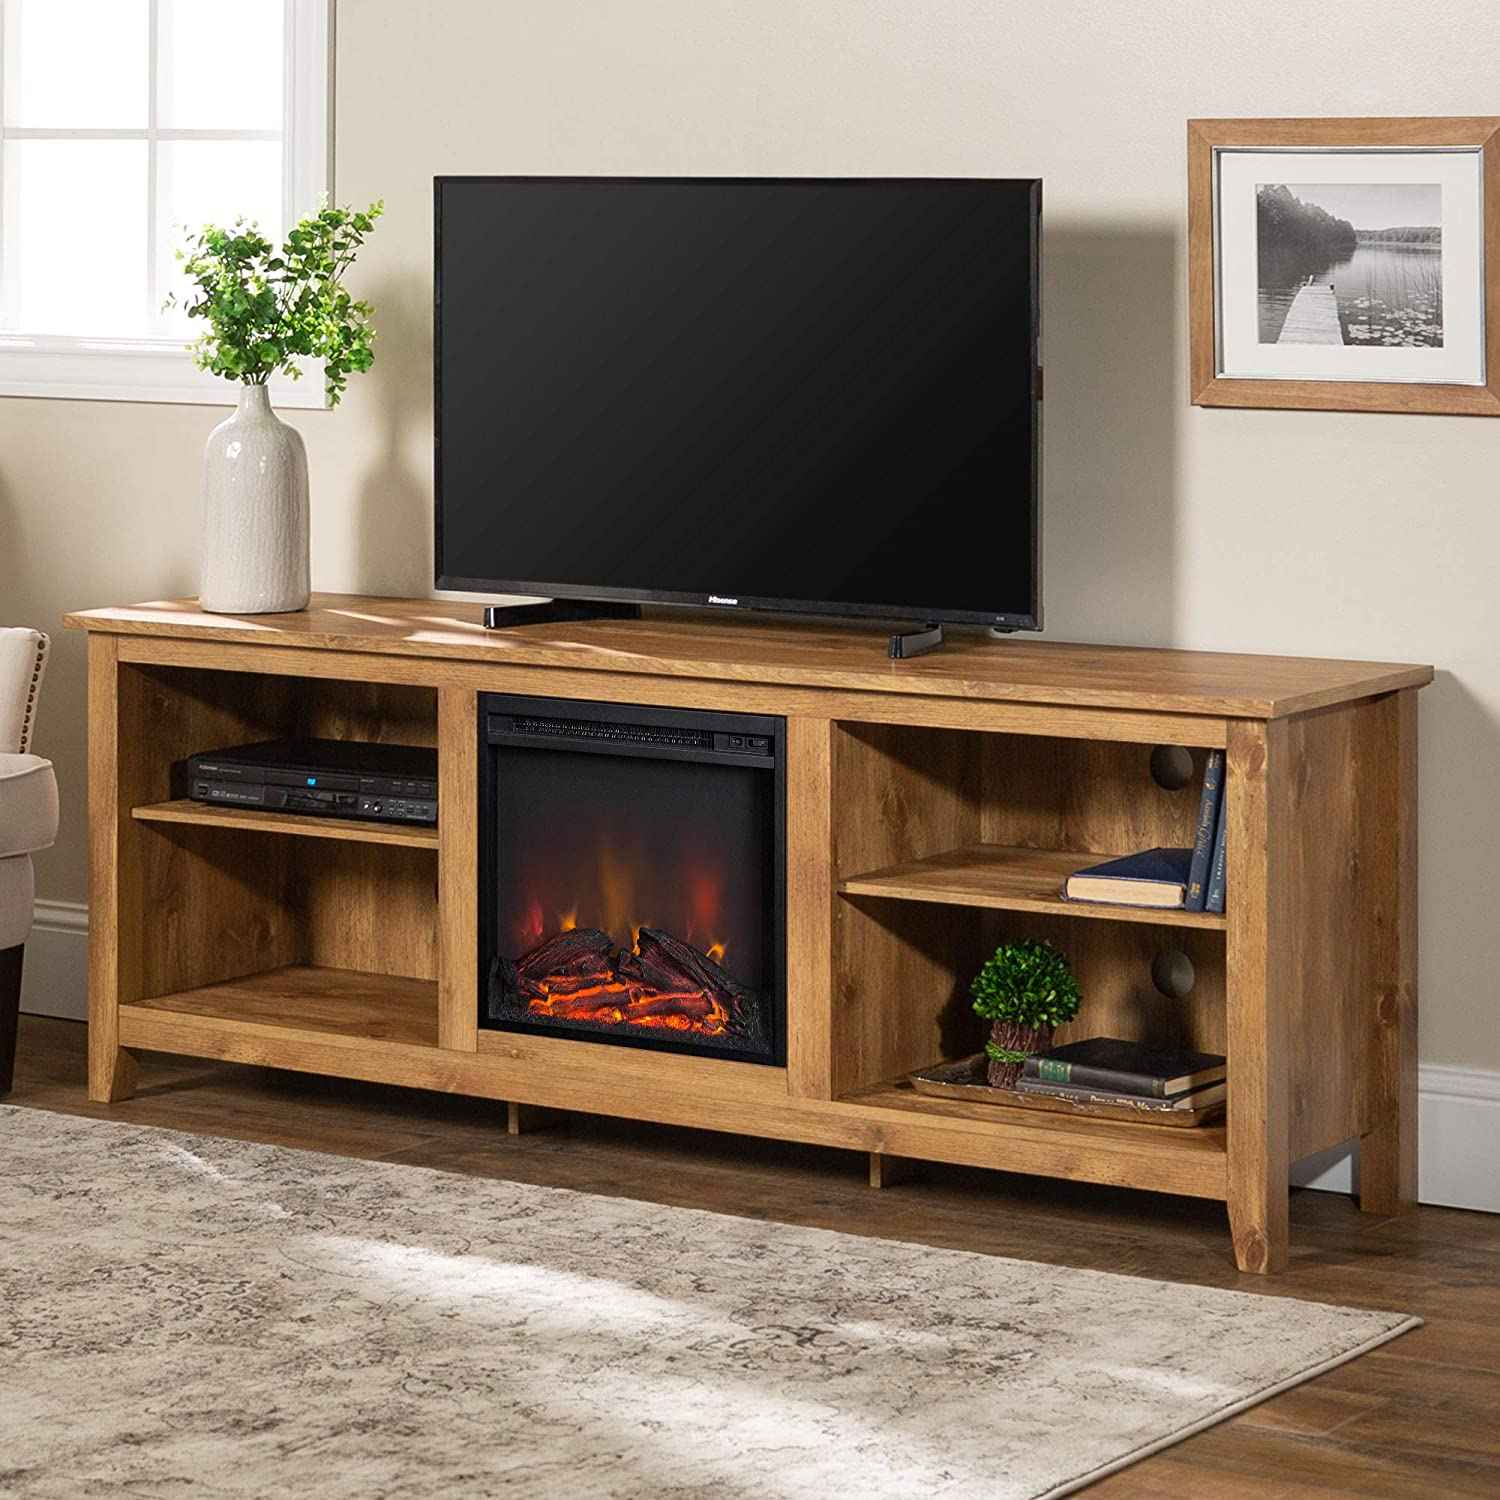 The Best fireplace tv stand - Our pick